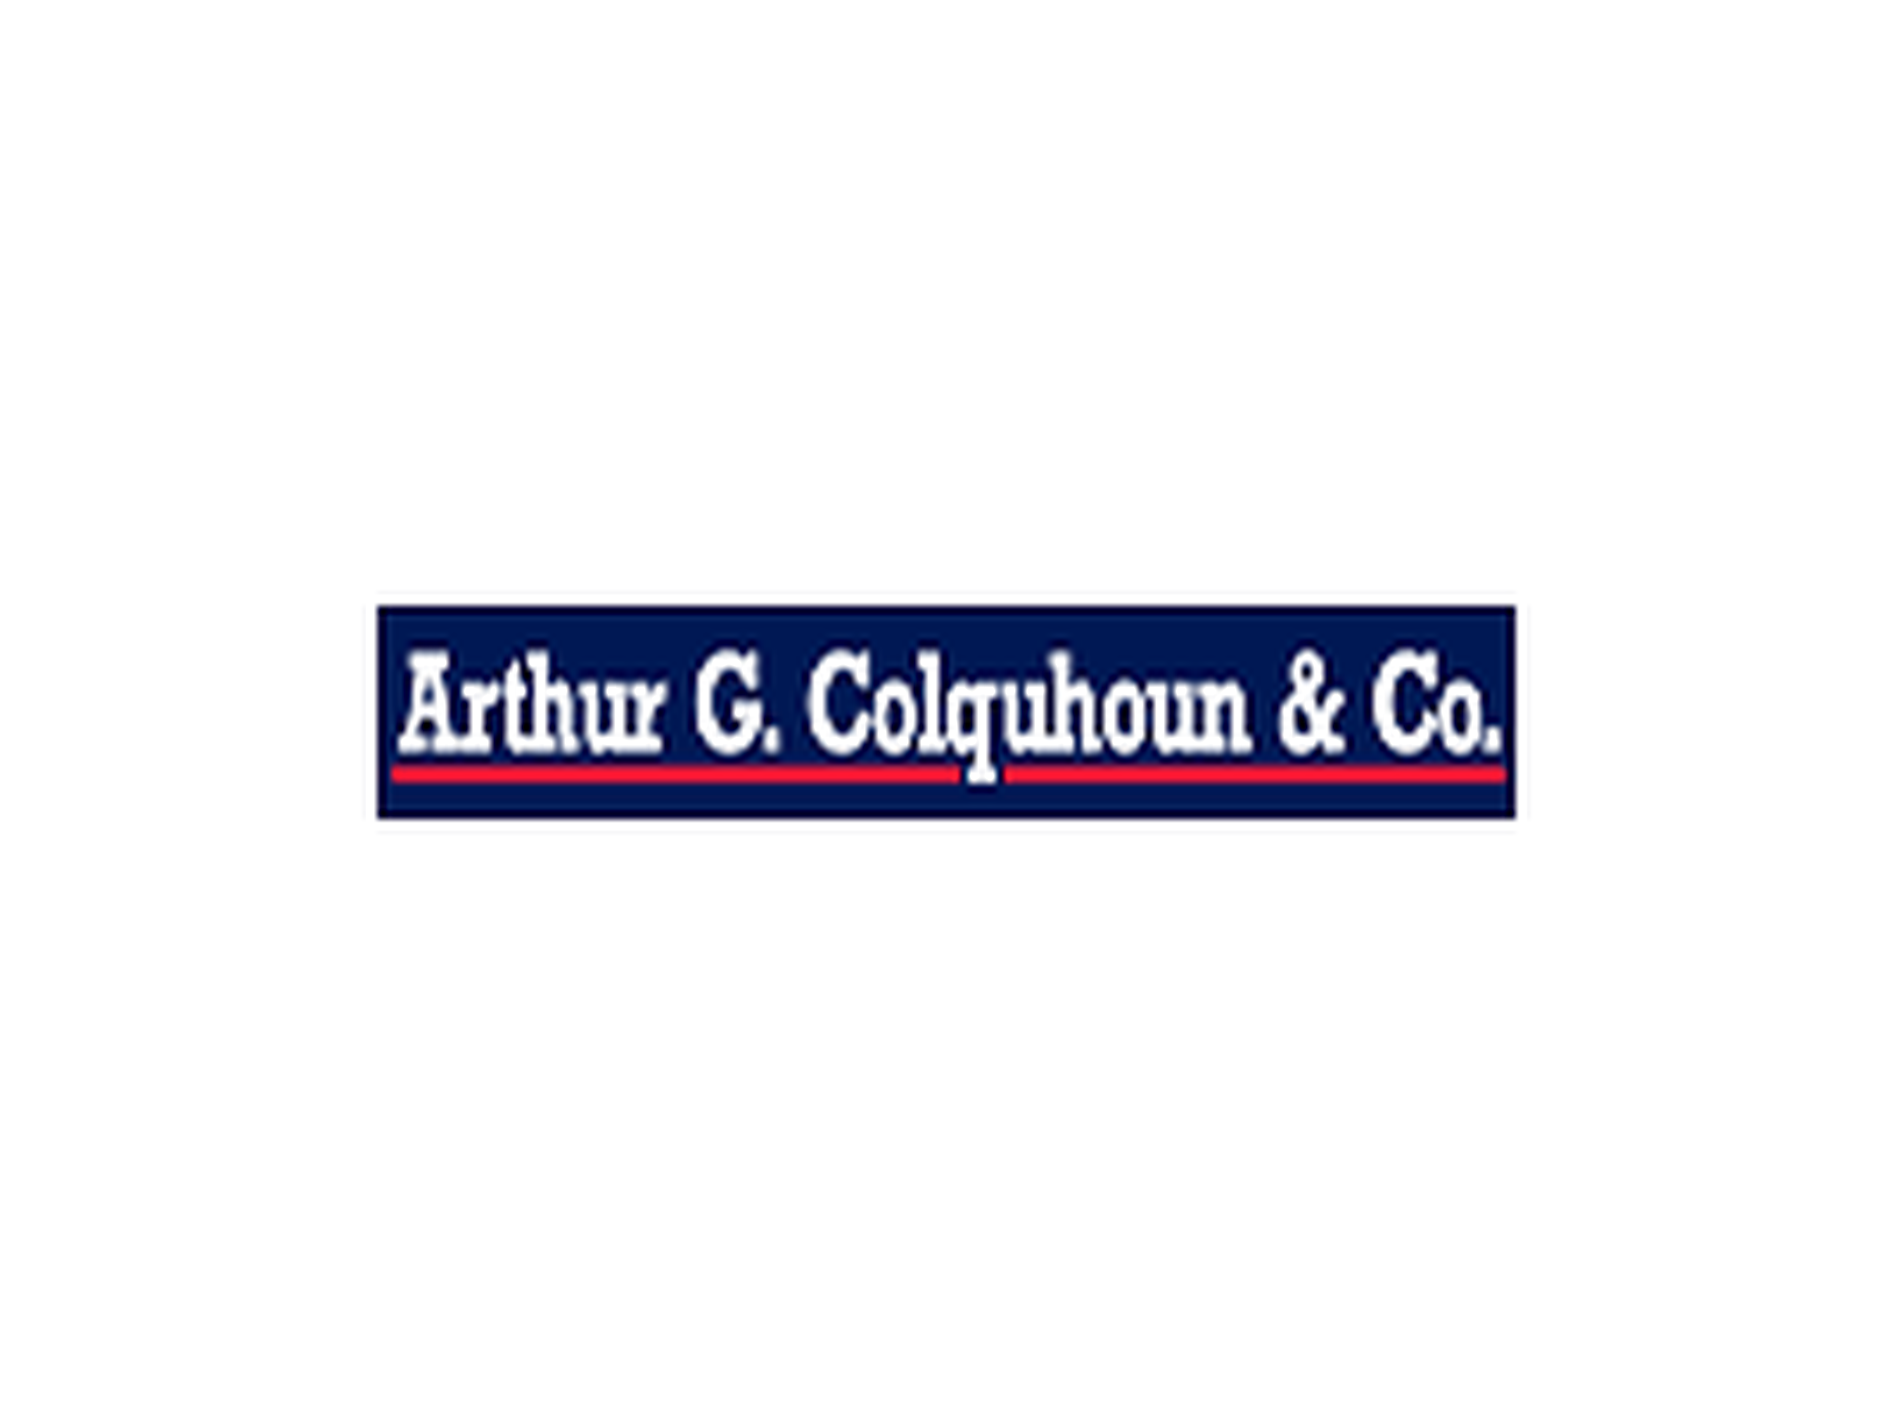 Arthur G. Colquhoun & Co Real Estate - Residential Rent Roll